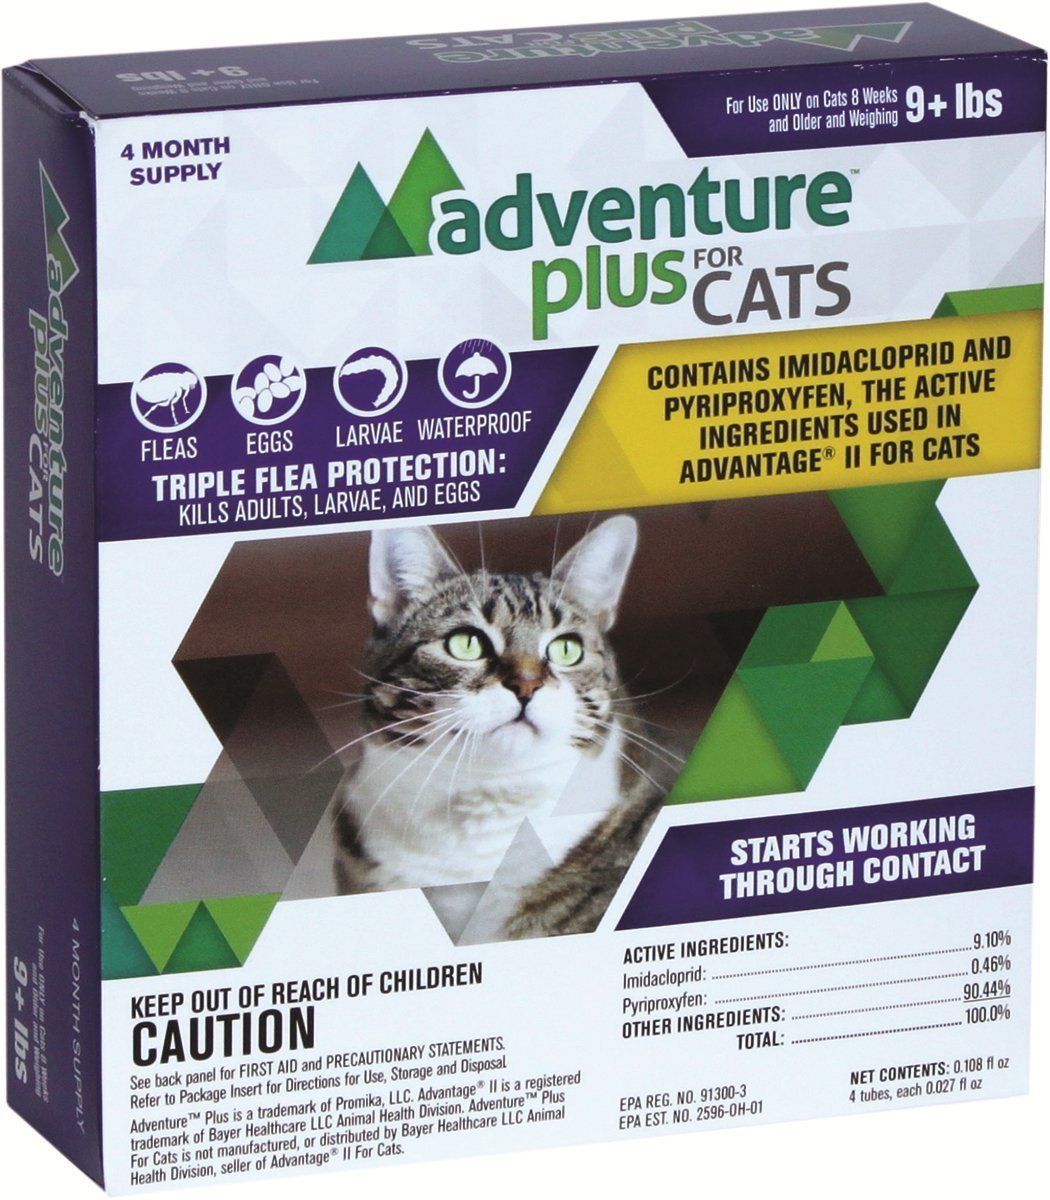 Adventure Plus Flea Medicine For Dog And Cat 100 Made In The Usa Click Image To Review More Details This Is An Affil Fleas Cats Flea Medicine For Cats